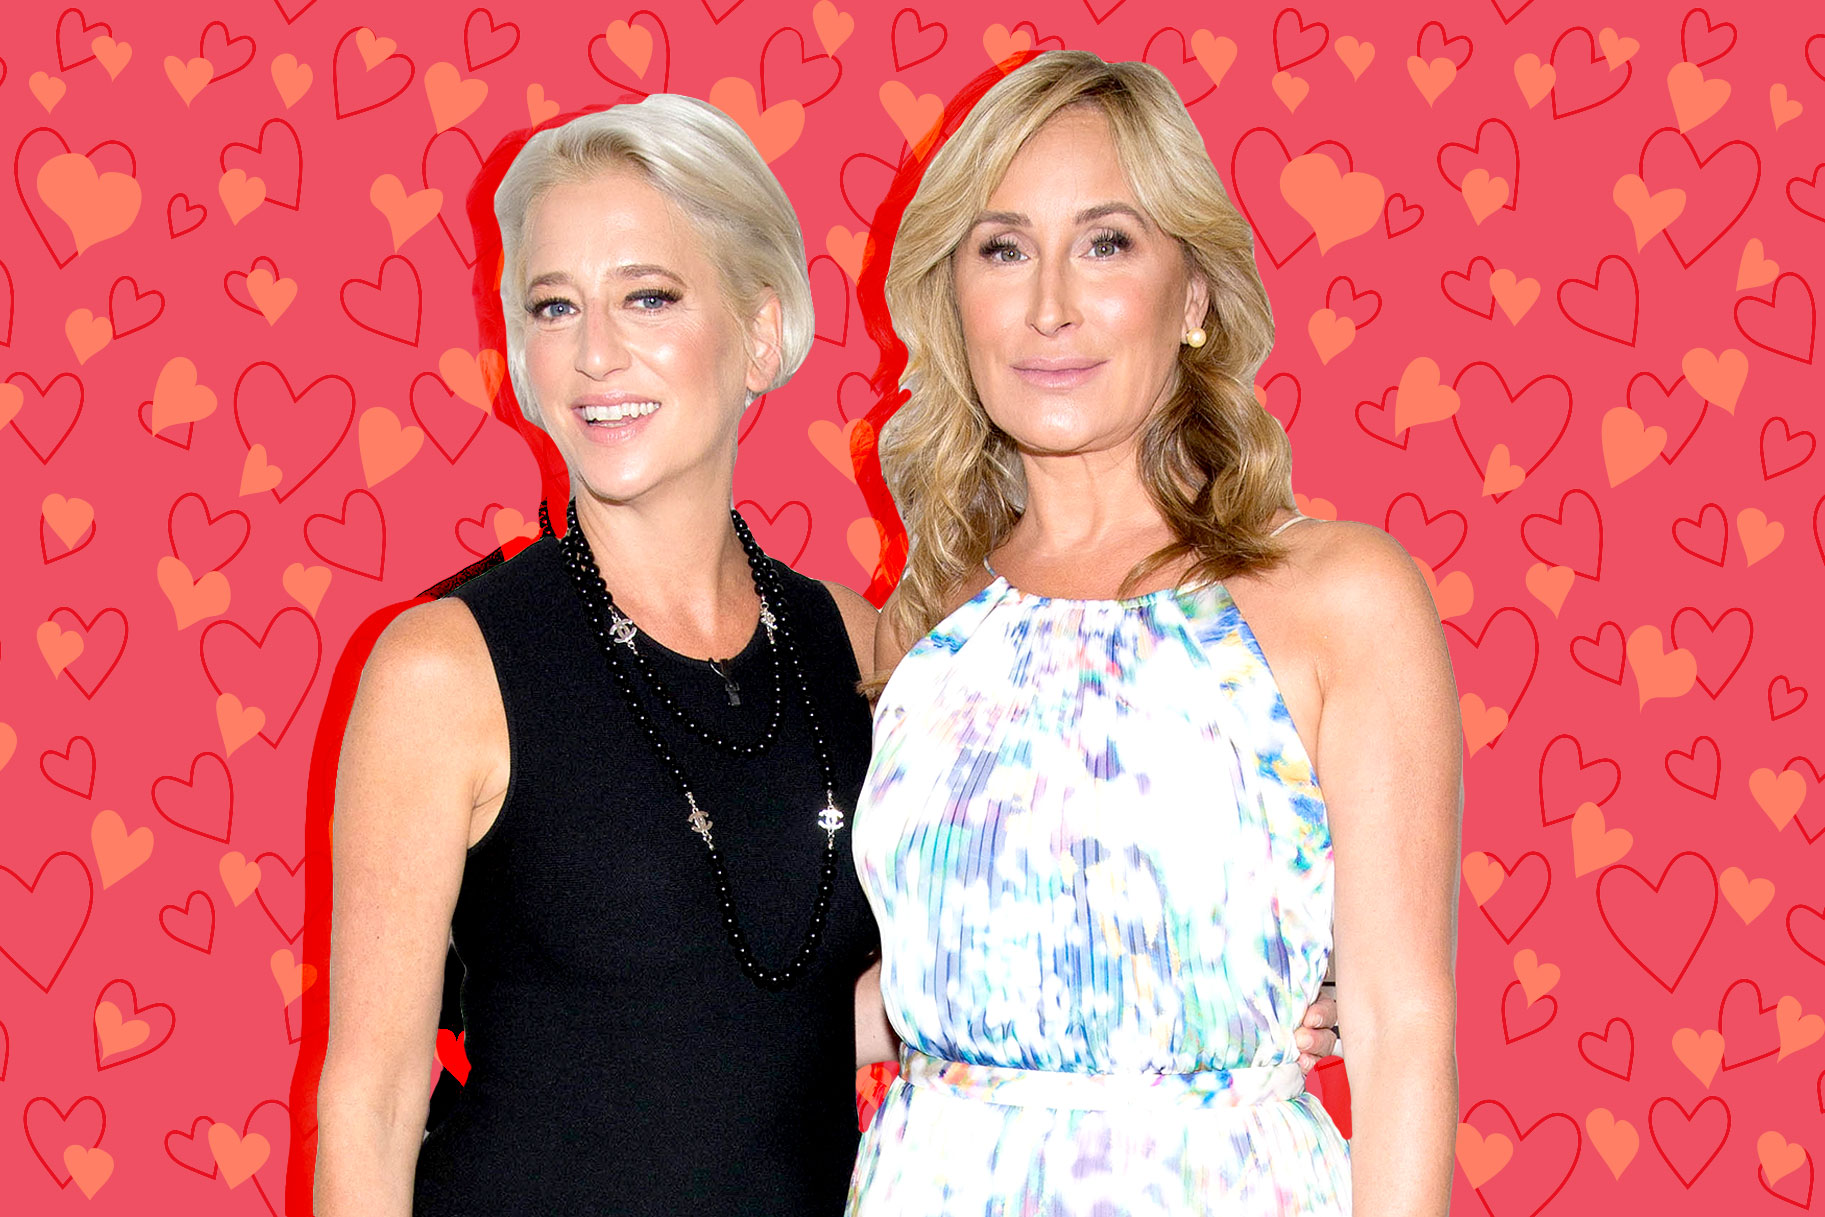 Dorinda Medley and Sonja Morgan